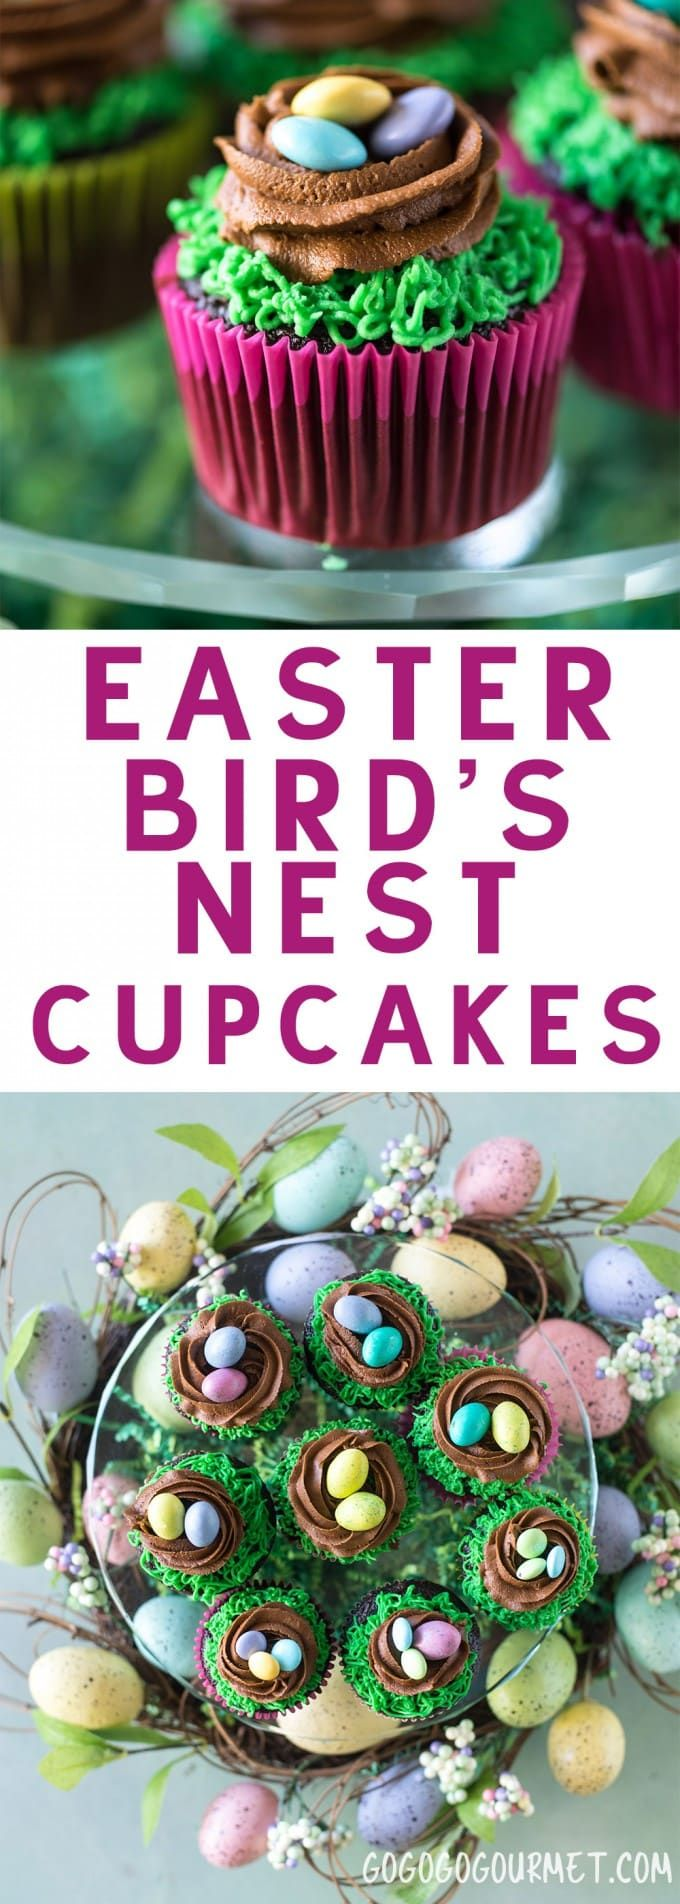 These Easter Birds Nest Cupcakes are an adorable and easy dessert to make for your Easter egg hunts! Two quick decorating maneuvers and some Easter candy are all that it takes! via @gogogogourmet